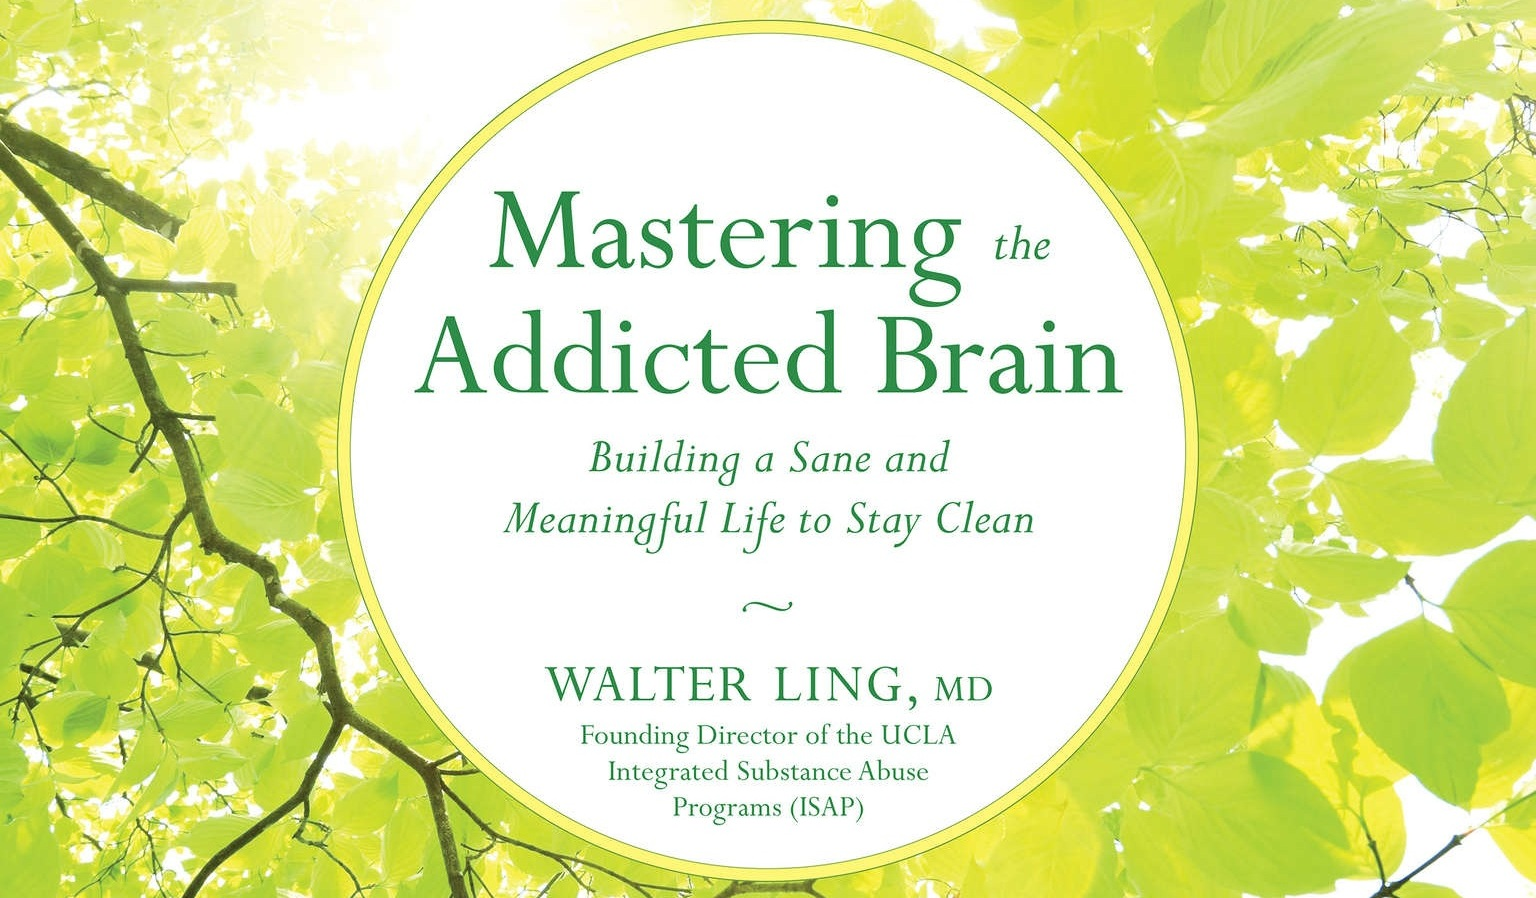 MASTERING THE ADDICTED BRAIN - (Audiobook)Dr. Walter Ling's examination of how one can understand, overcome and learn to live beyond addiction, and master one's own brain. A short, straightforward and insightful look into addiction and how to understand the disease. Narrated by Brent Hirose.Buy it on Amazon here.